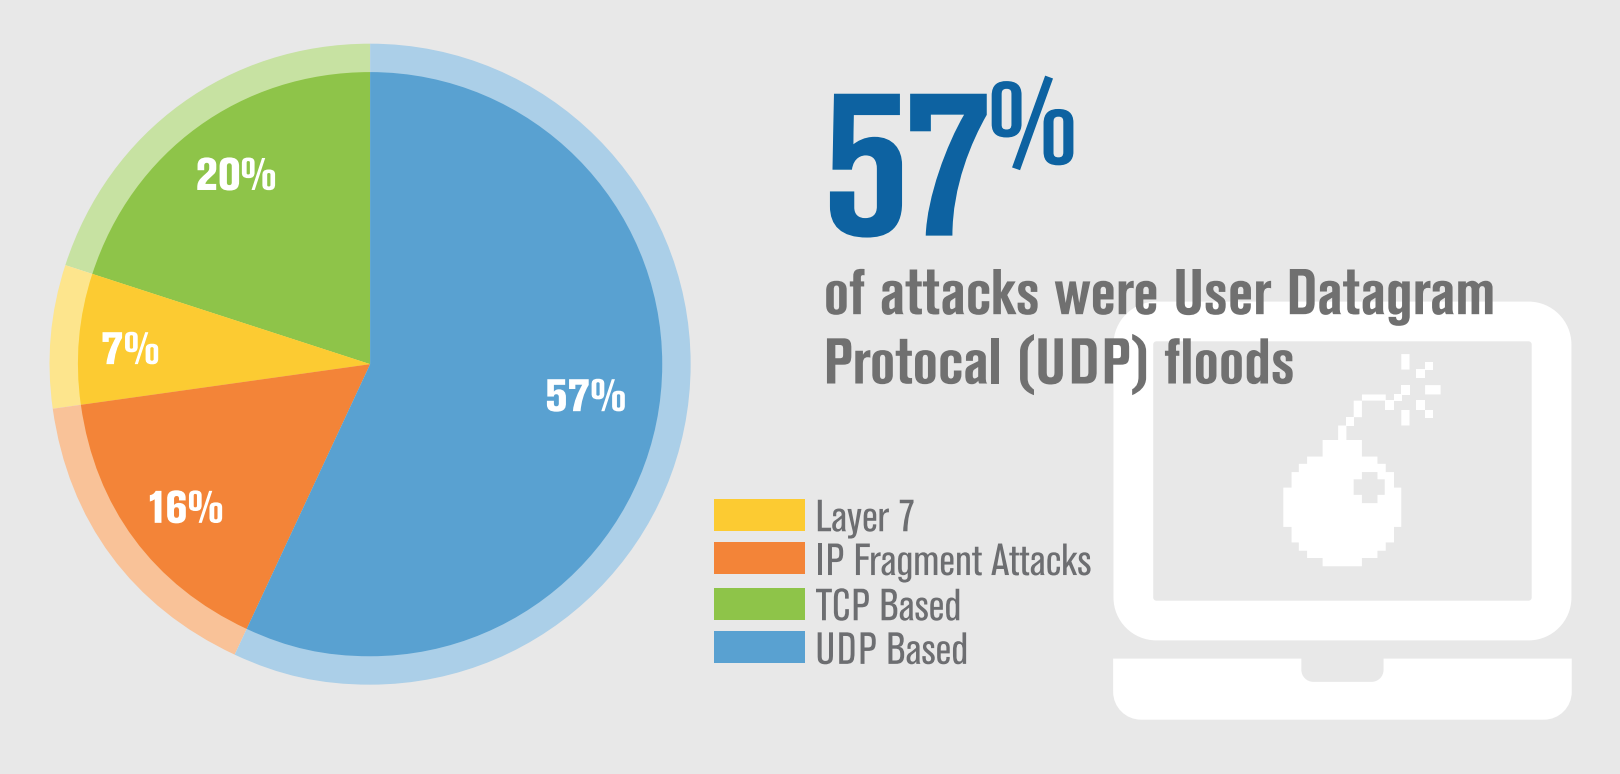 Types of DDoS Attacks in Q2 2017